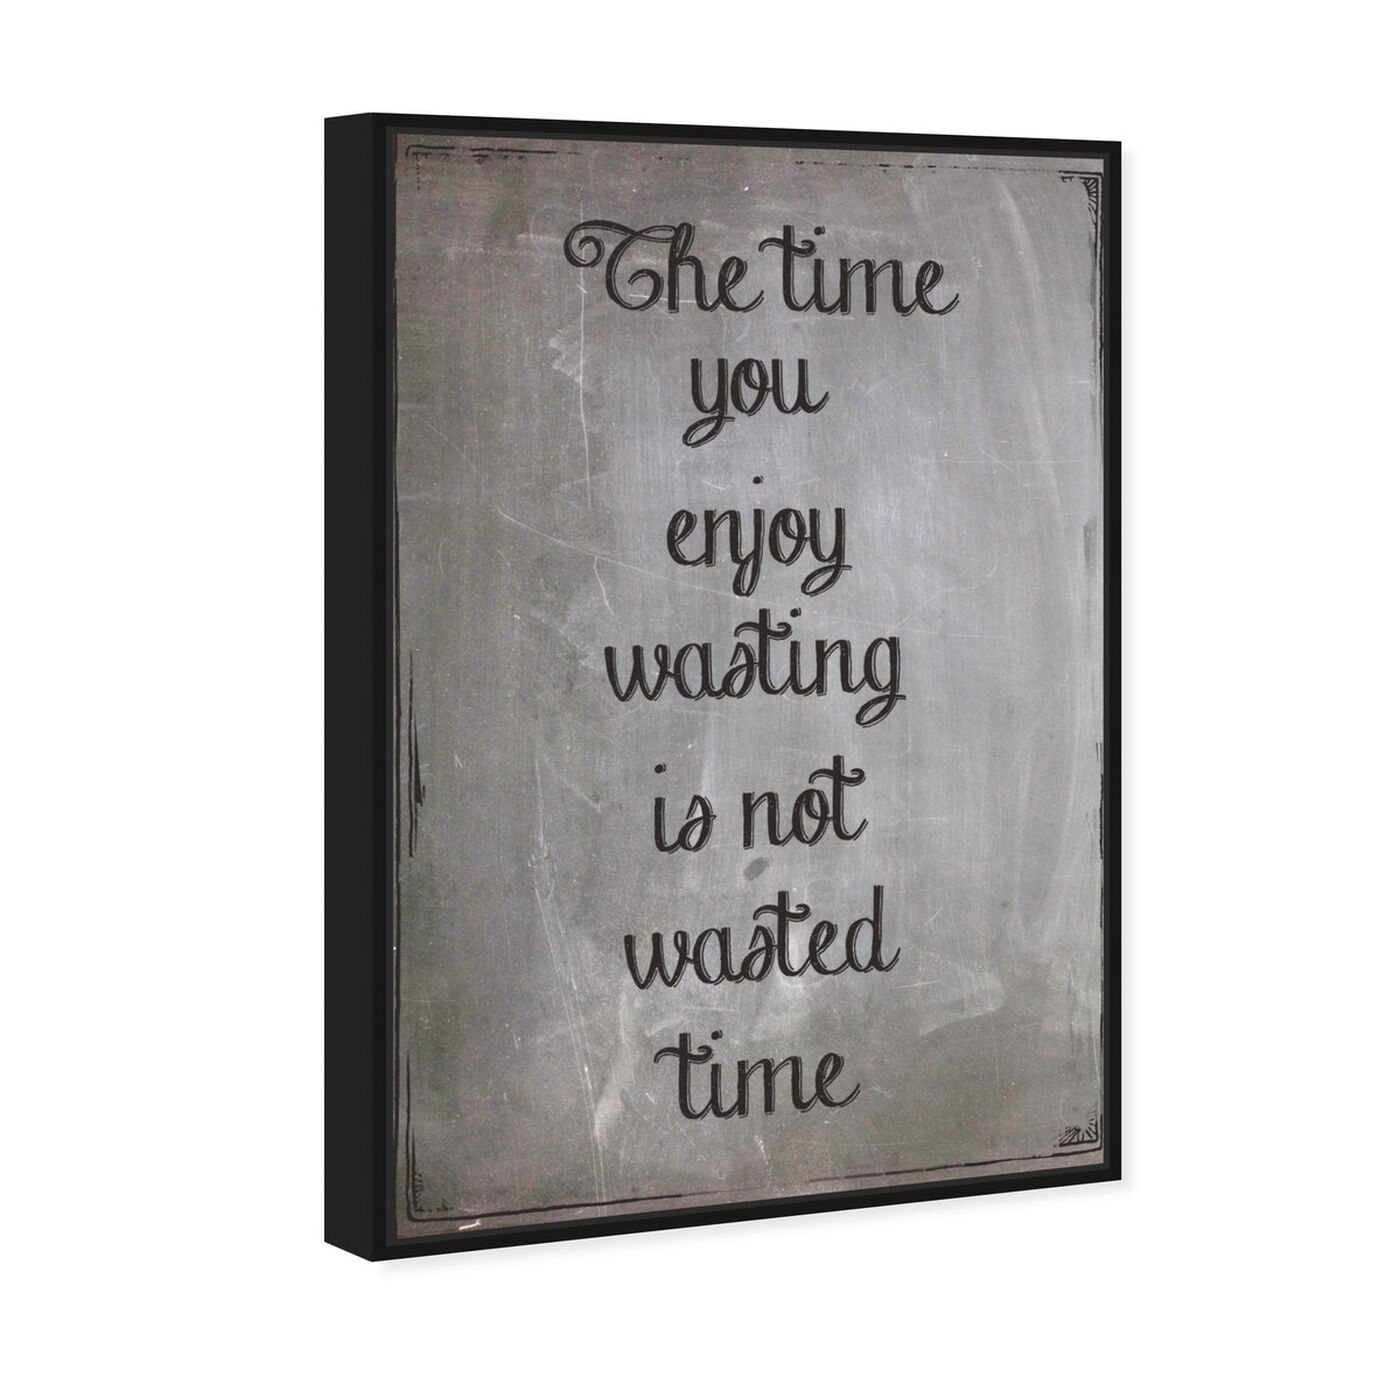 Angled view of The Time featuring typography and quotes and inspirational quotes and sayings art.